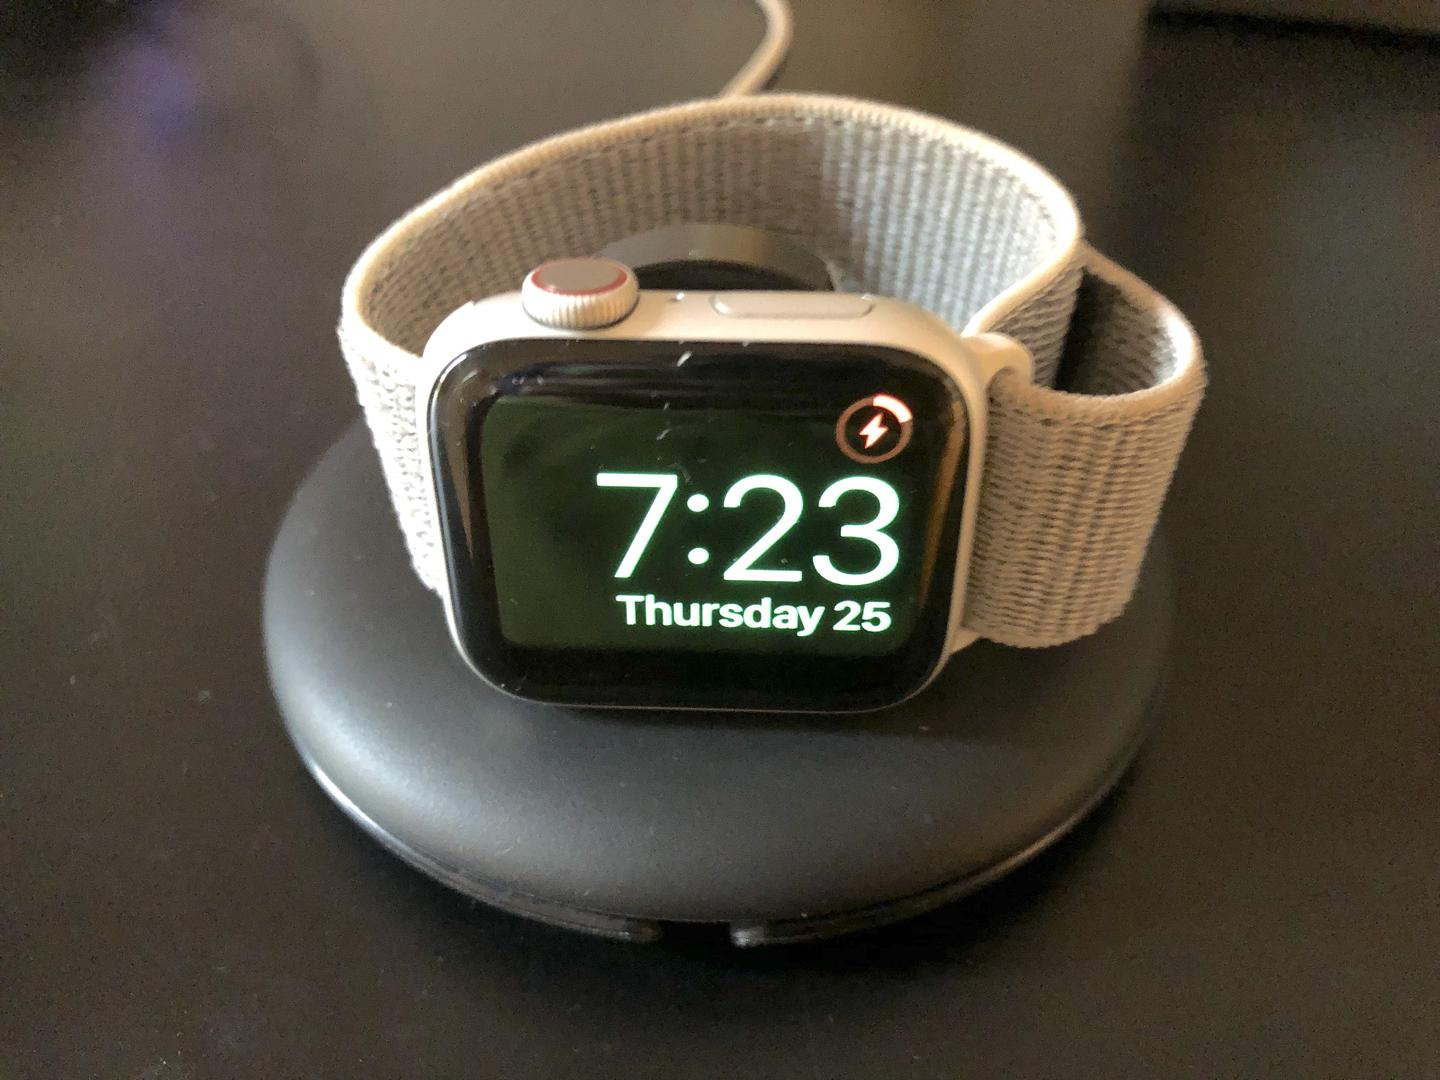 Apple Watch Series 4 40mm (AT&T) [A1975 - Cellular], Aluminum - Silver